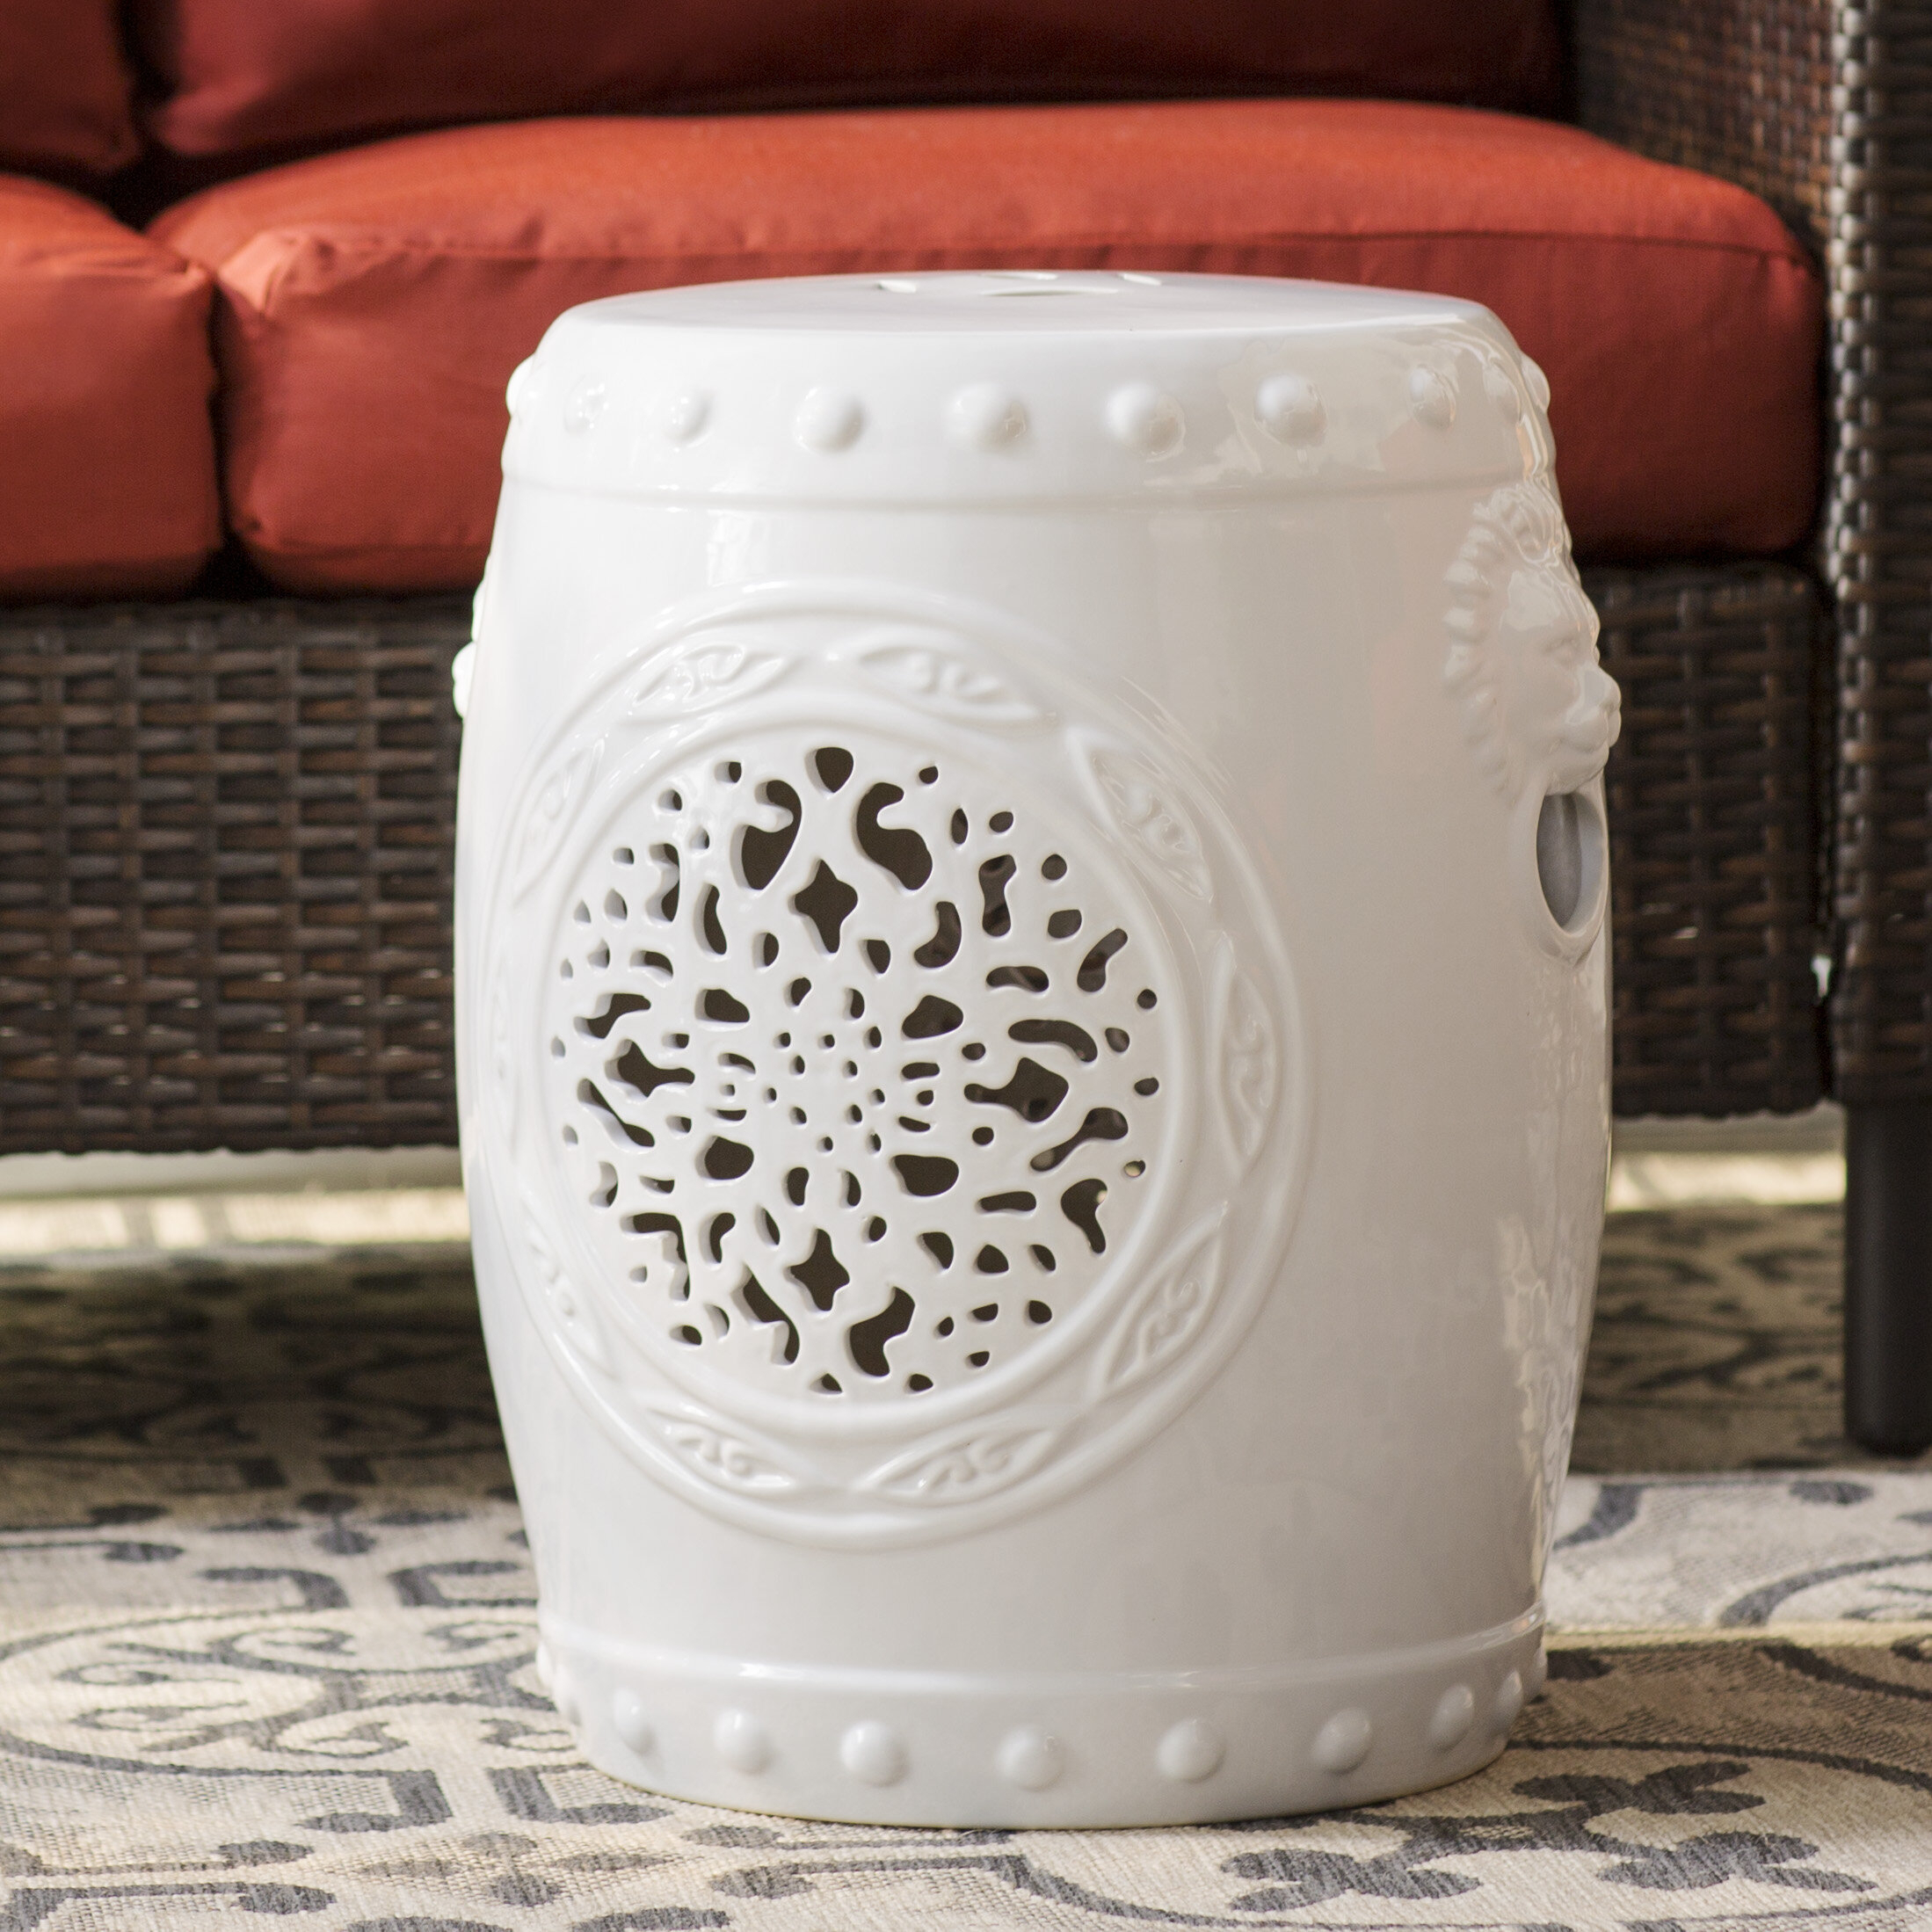 Ceramic Garden Accent Stools You'Ll Love In 2020 | Wayfair Within Arista Ceramic Garden Stools (View 5 of 25)